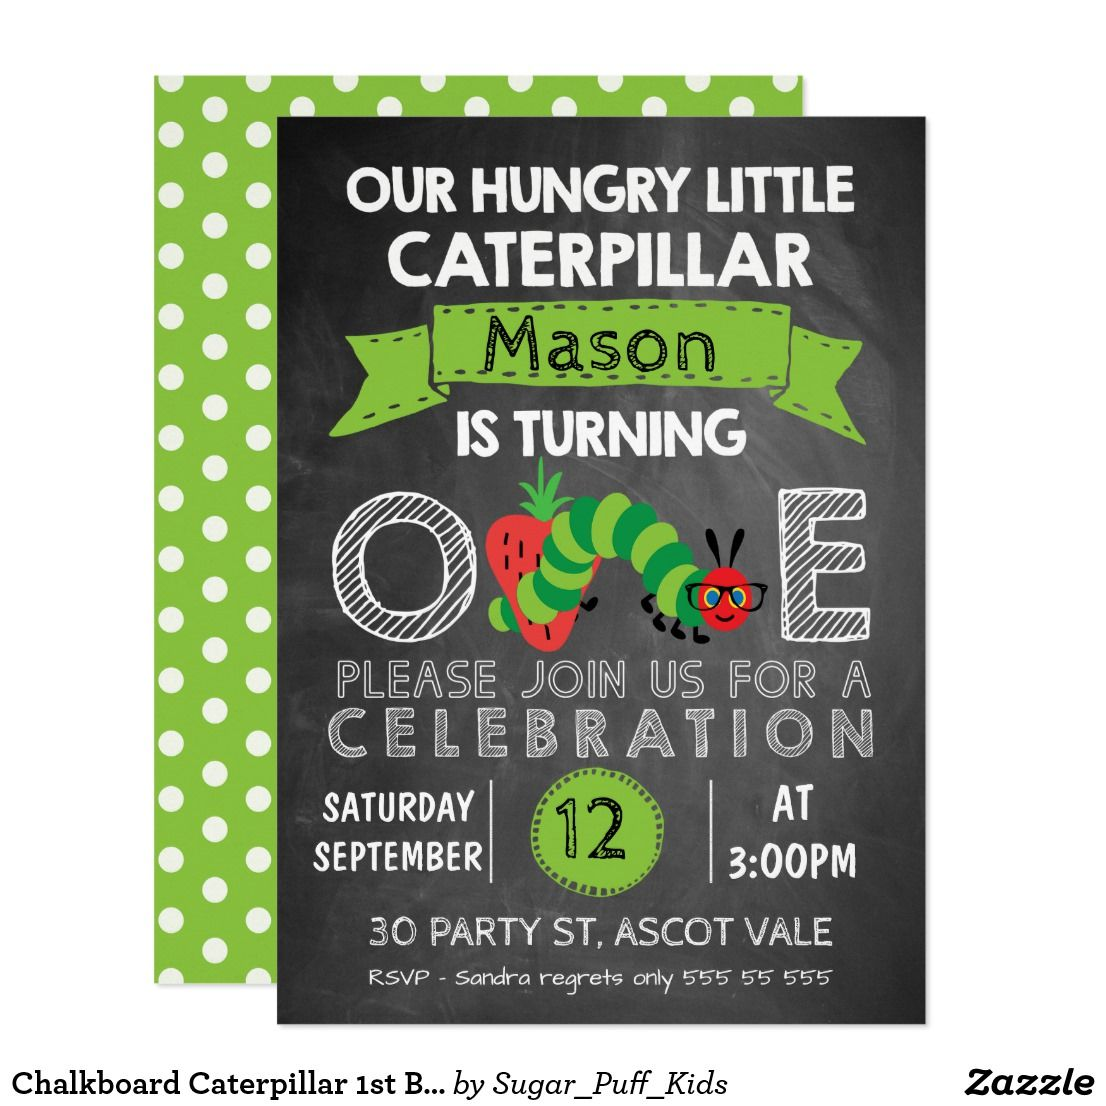 Chalkboard Caterpillar 1st Birthday Invitation | Hungry caterpillar ...